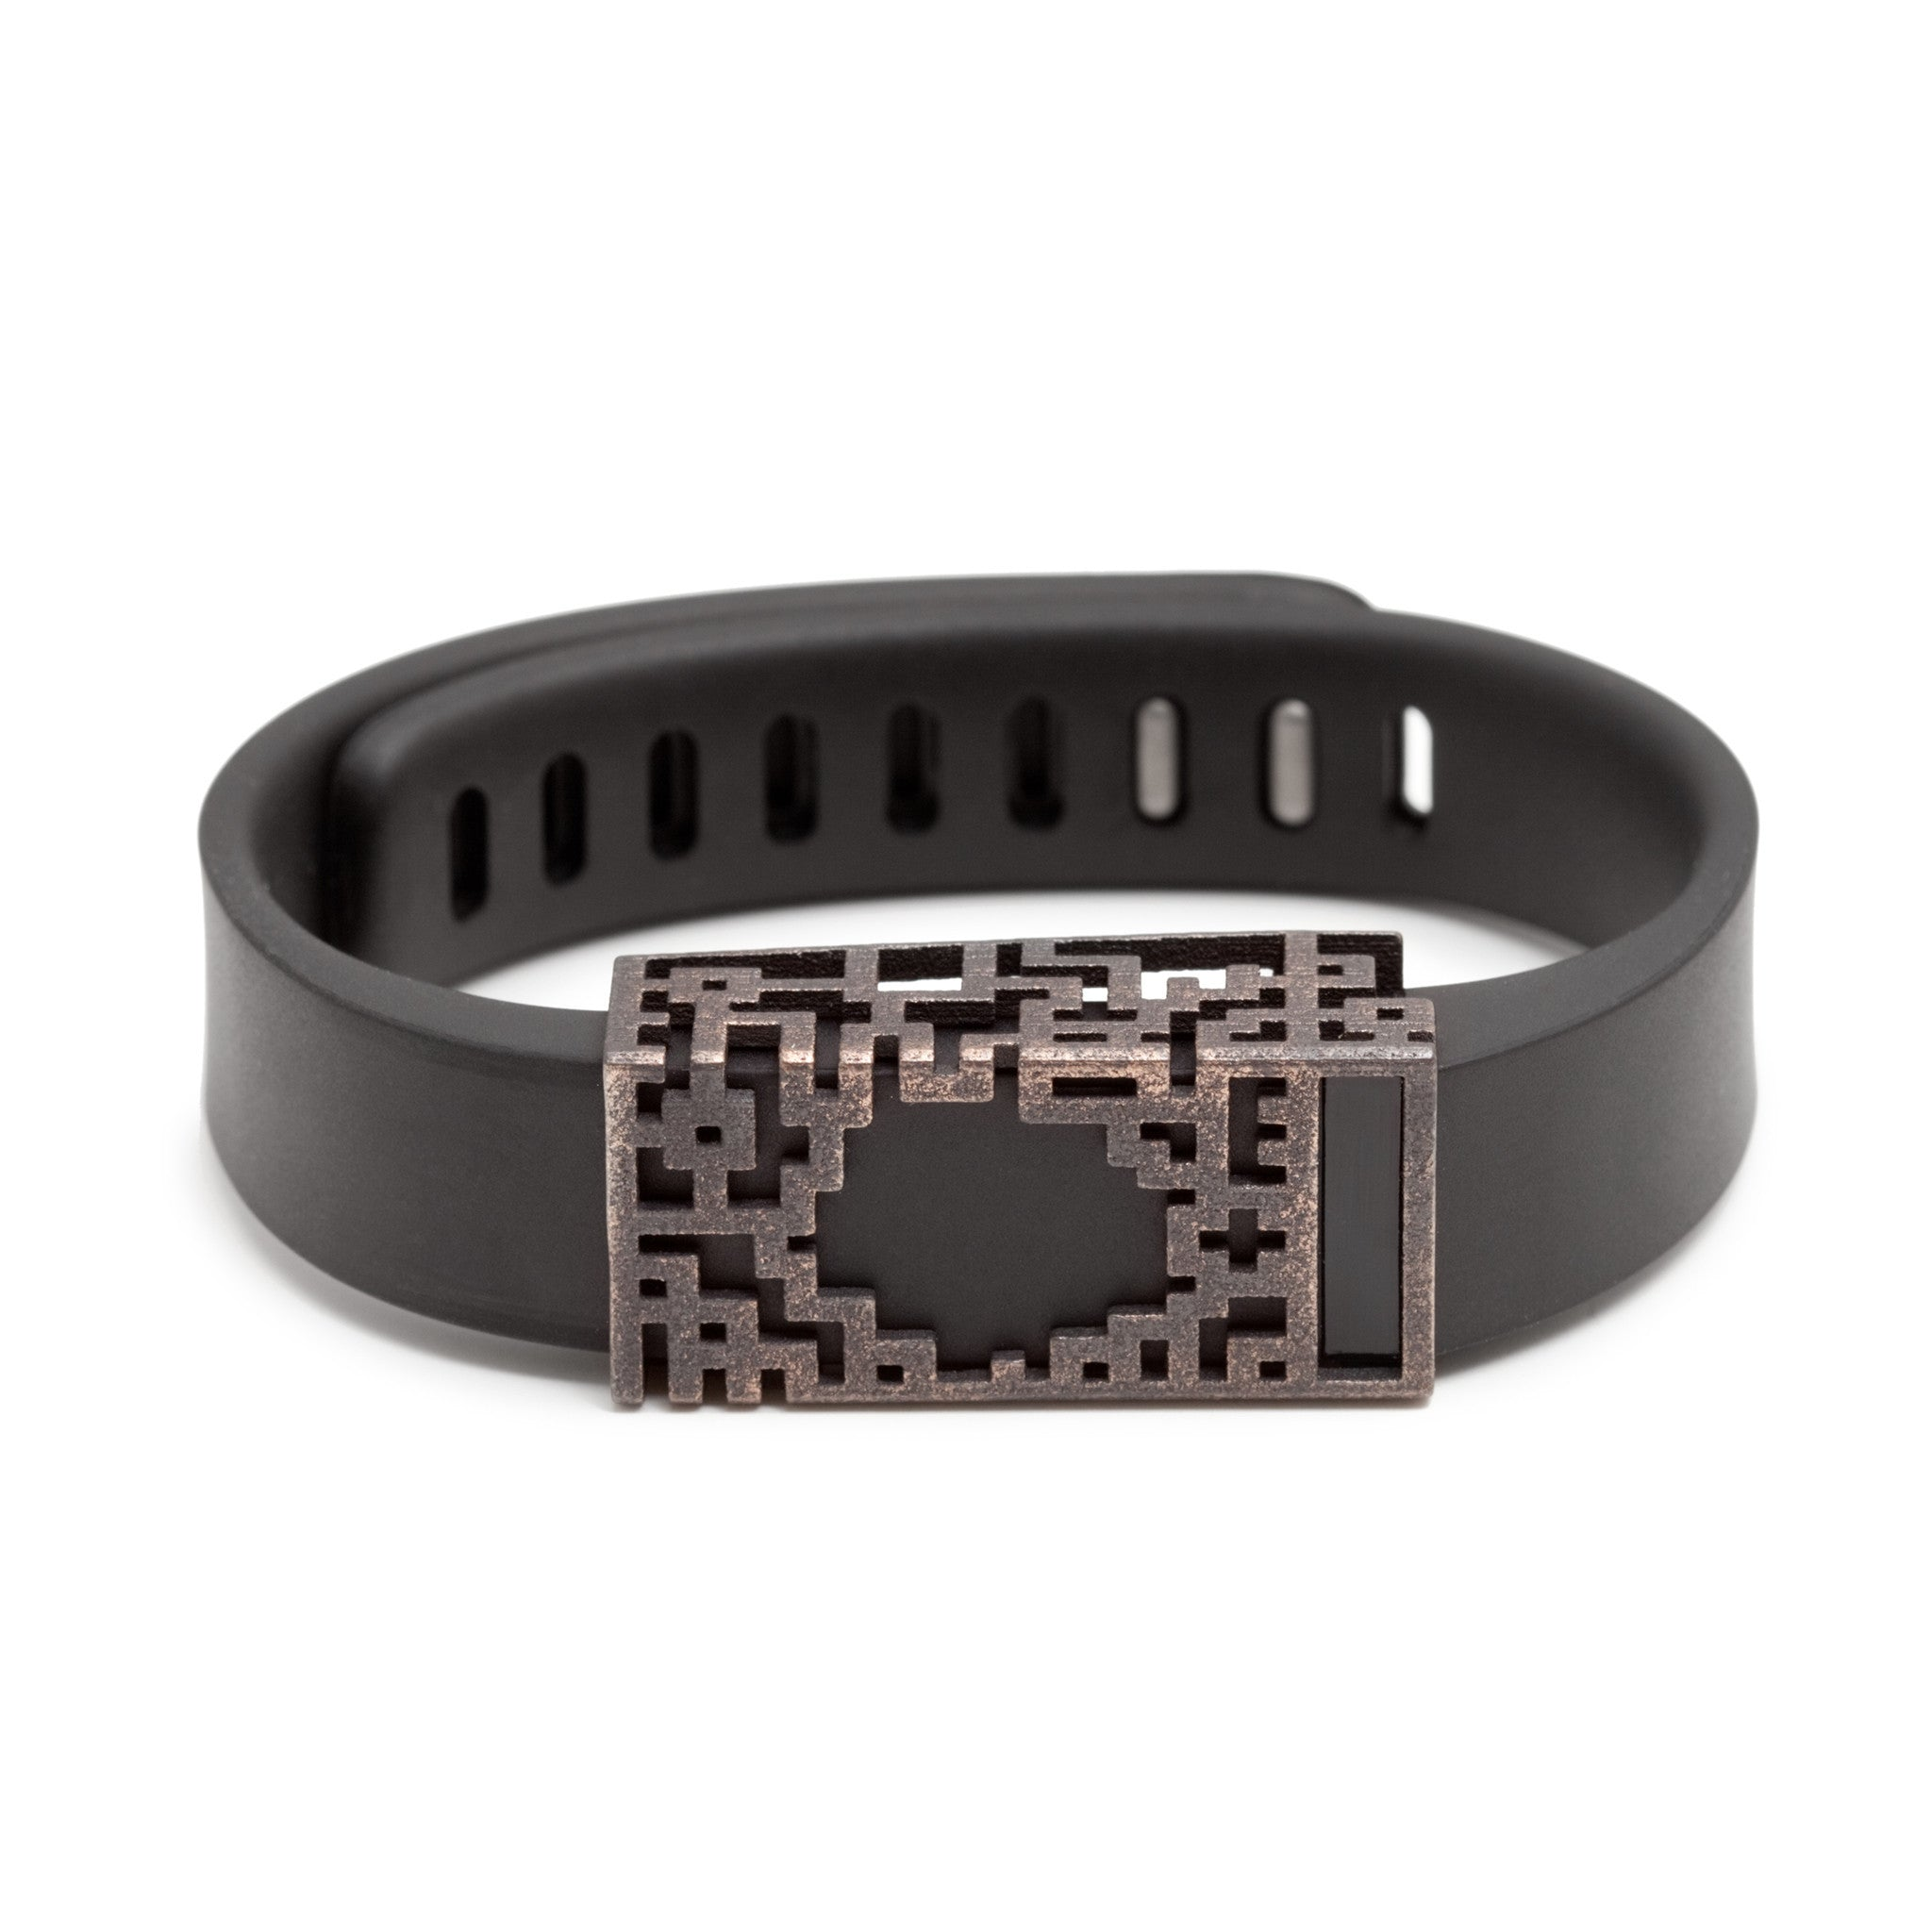 Fitbit Flex with Bytten Lucas slide - antique steel